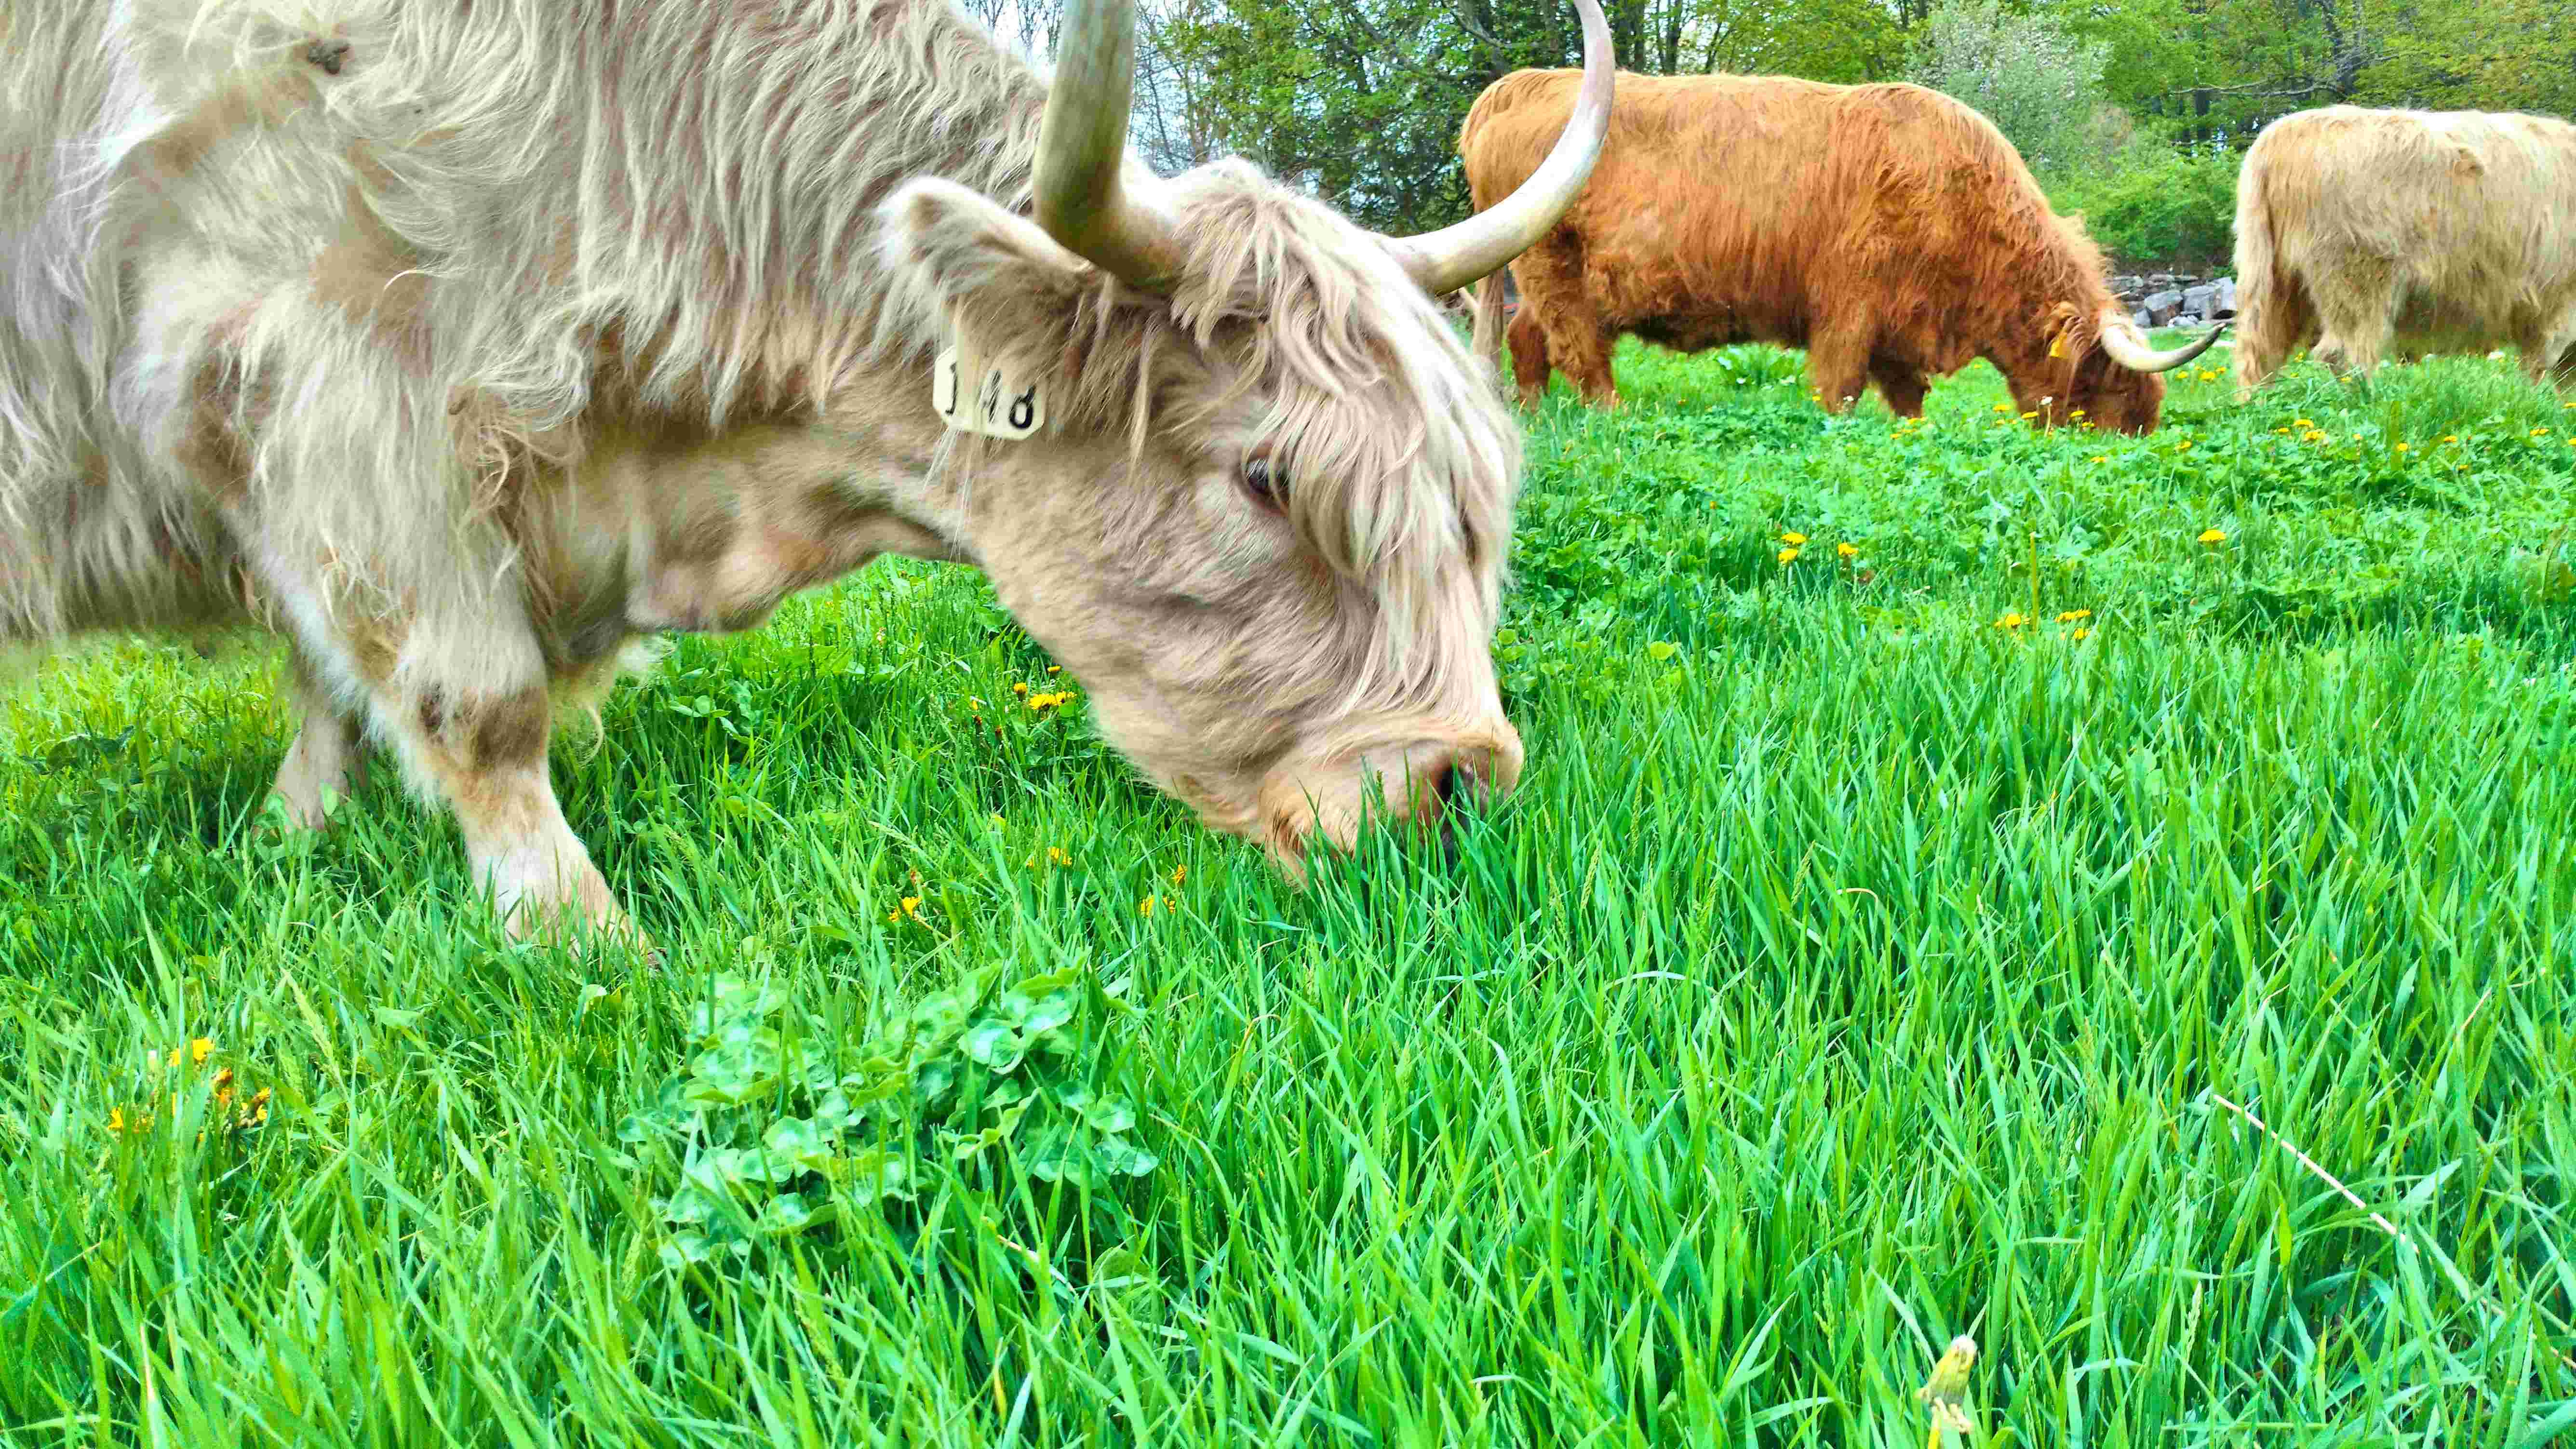 Cows Are Growing, So Is the Grass